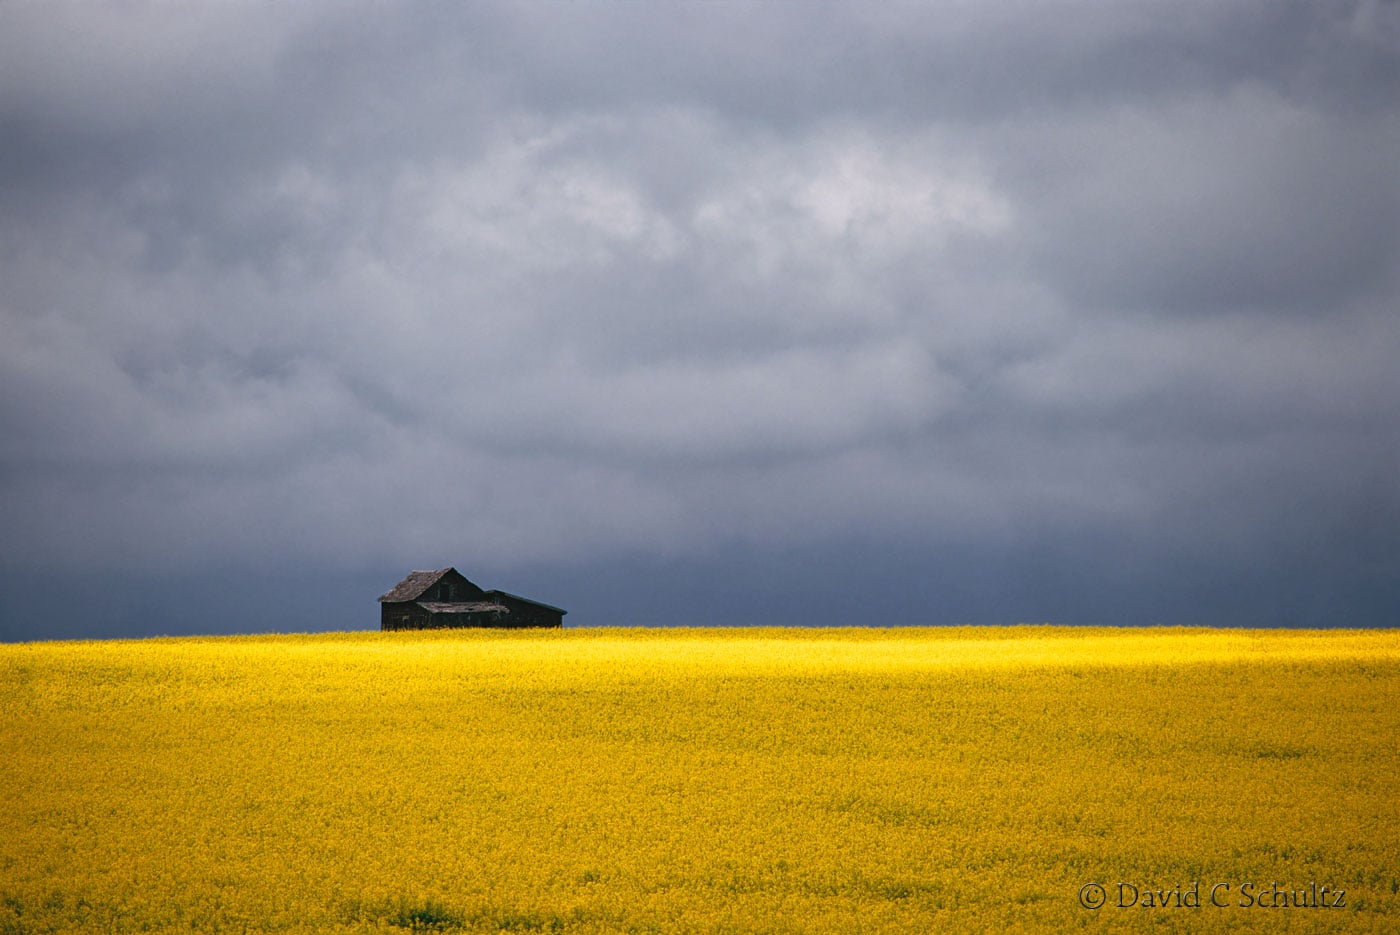 Canola field in bloom in Alberta, Canada - Image #7-1376